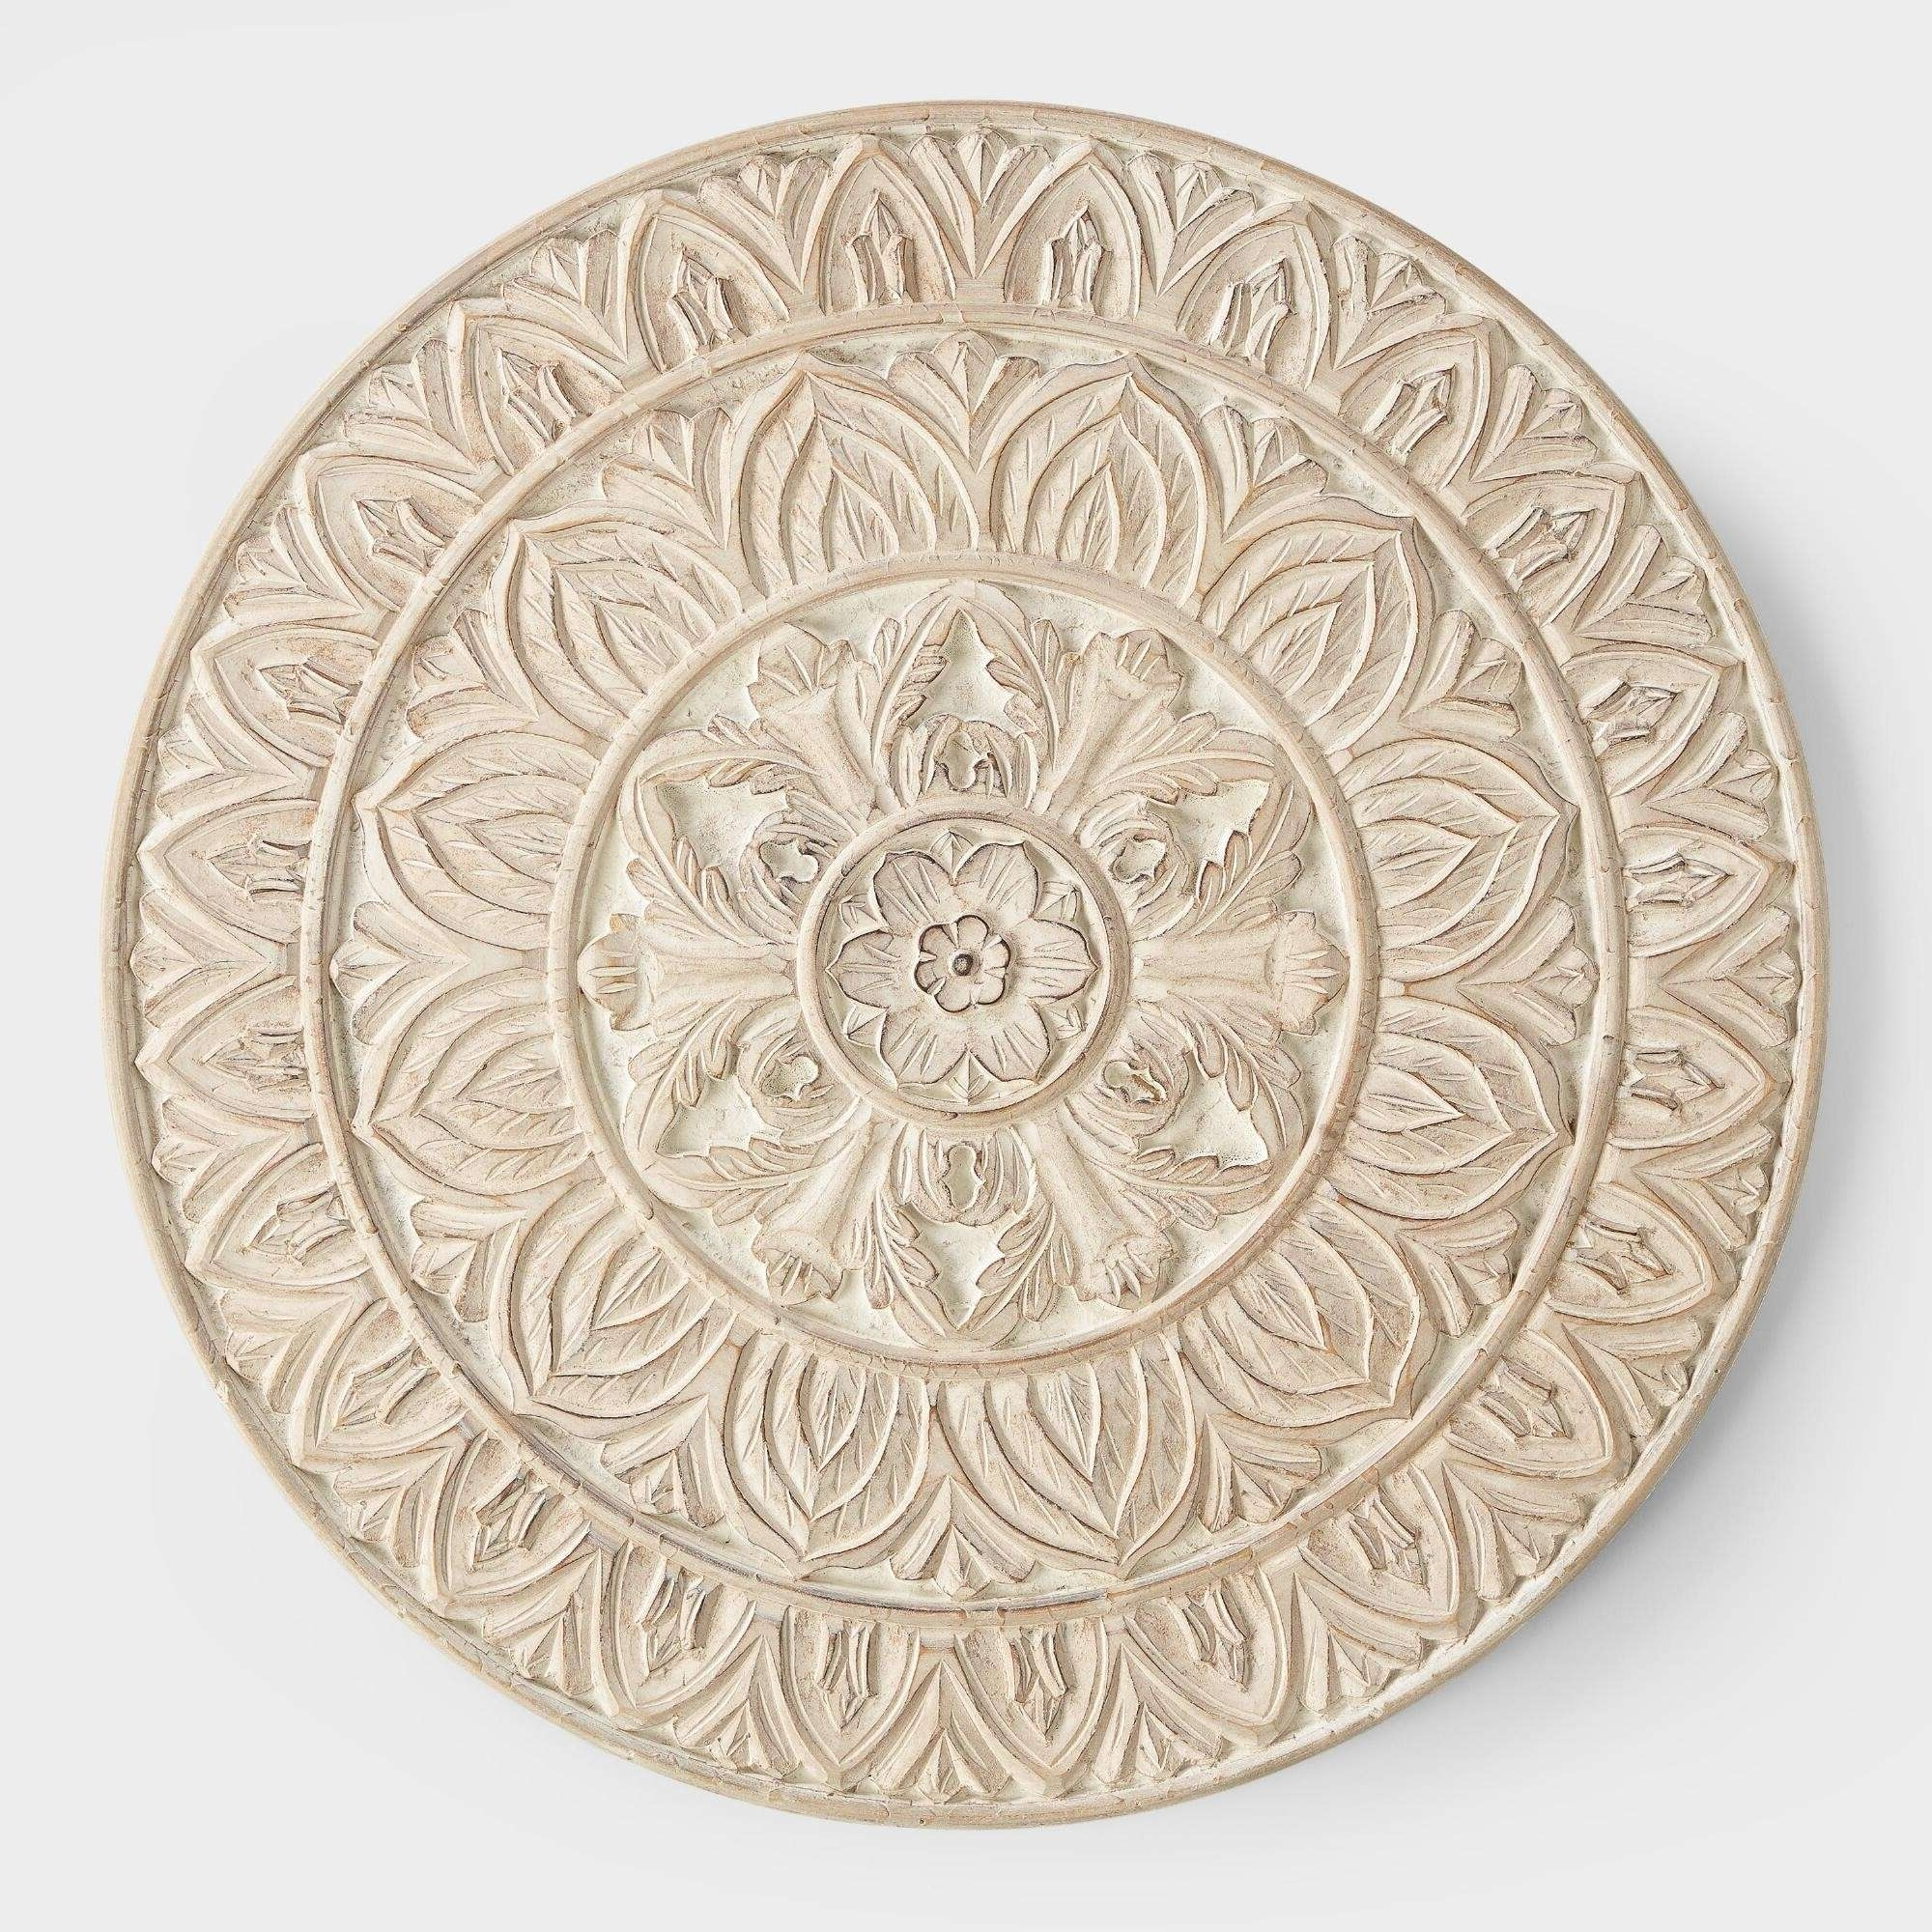 Best And Newest Round Wood Wall Art Round Wood Wall Art Best Of Whitewashed Round Throughout Round Wood Wall Art (View 1 of 15)